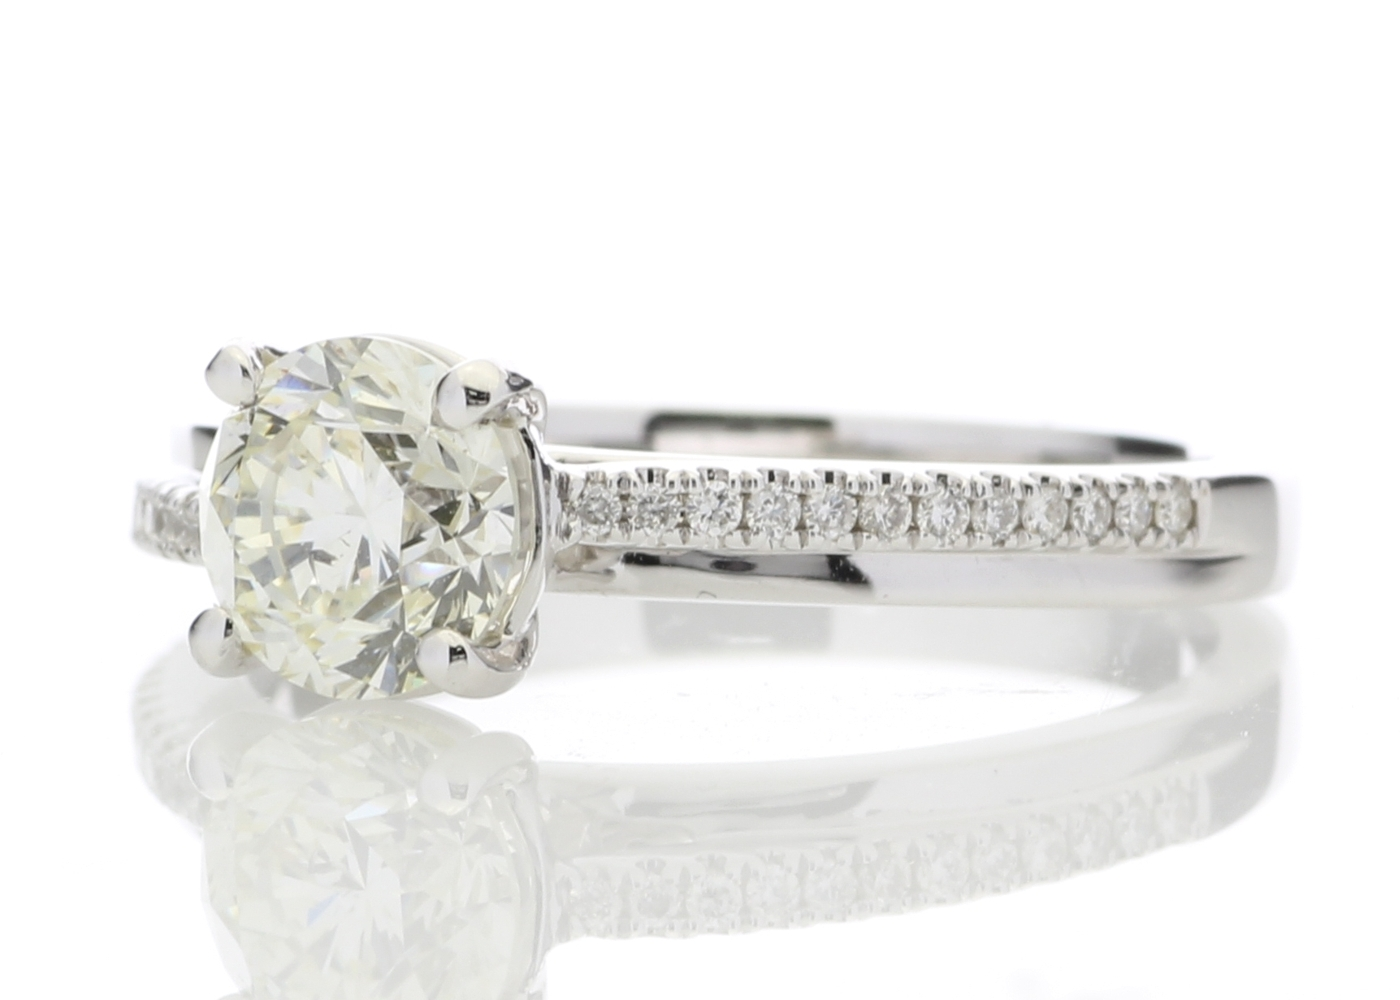 18ct White Gold Stone Set Shoulders Diamond Ring 1.11 Carats - Image 2 of 5